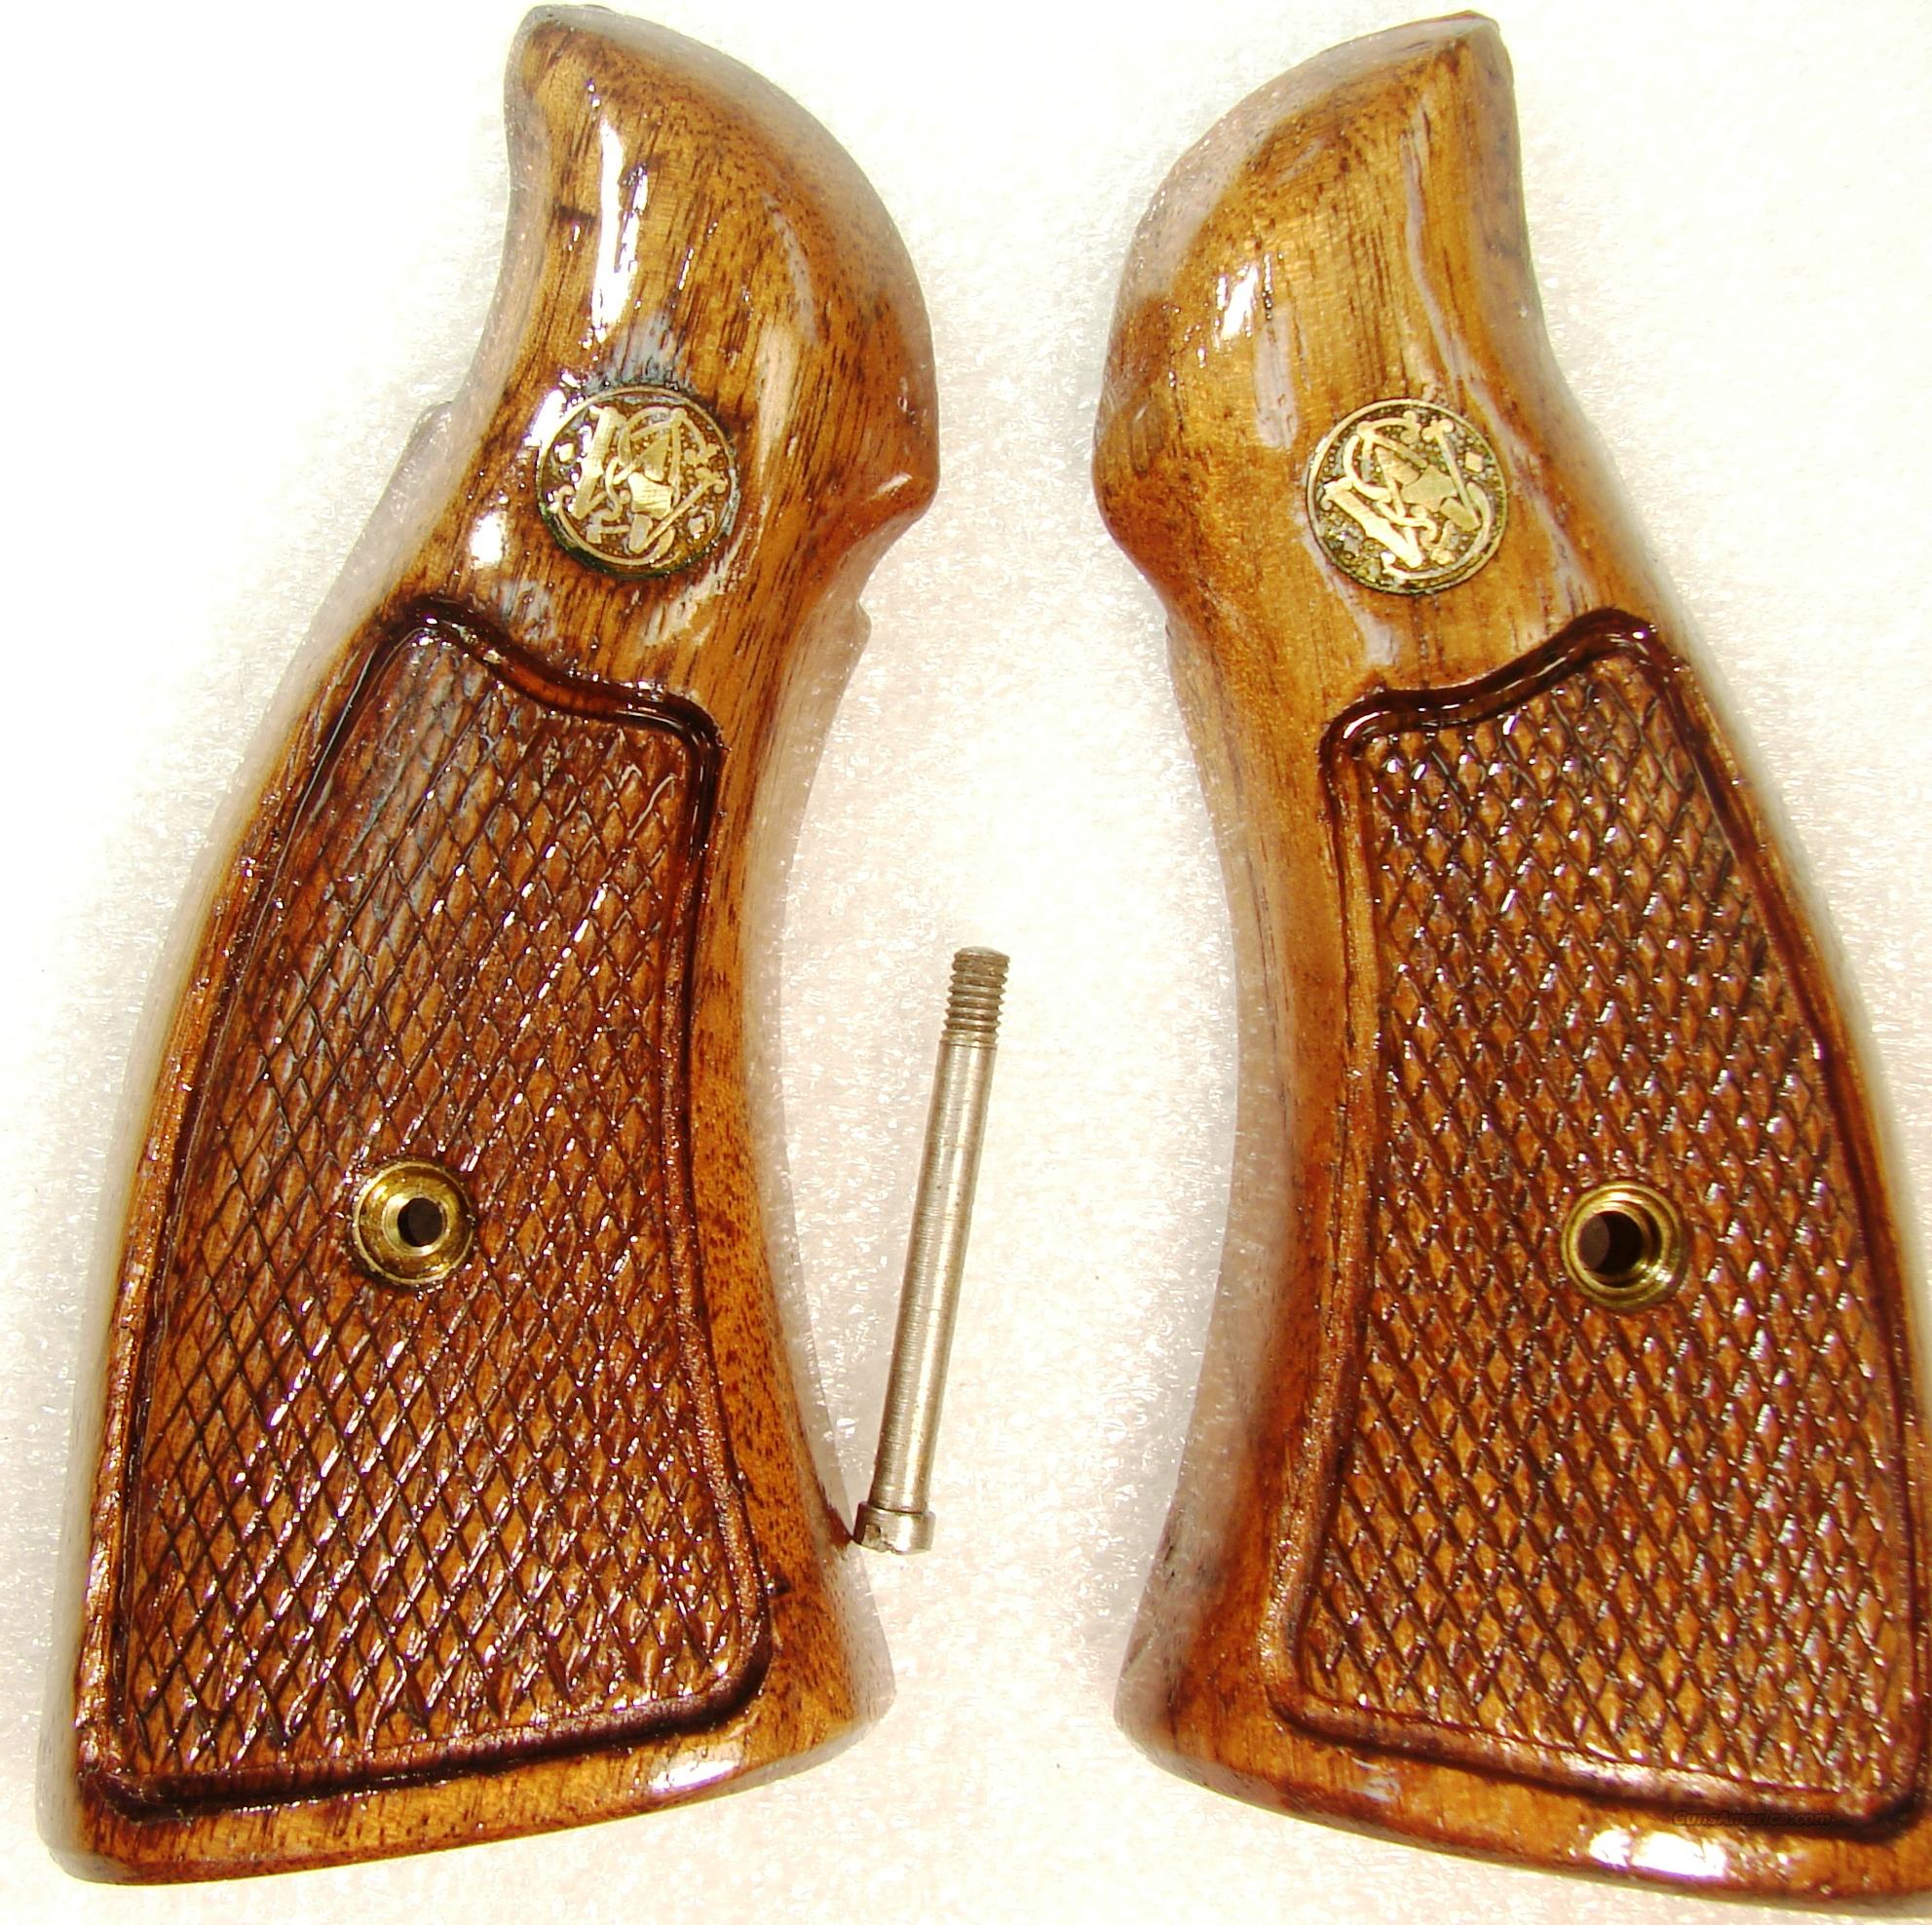 Grips S&W K L Square Butt Service Magna style Late 1980s Goncalo Alves Excellent Refinish Smith & Wesson  Non-Guns > Gunstocks, Grips & Wood